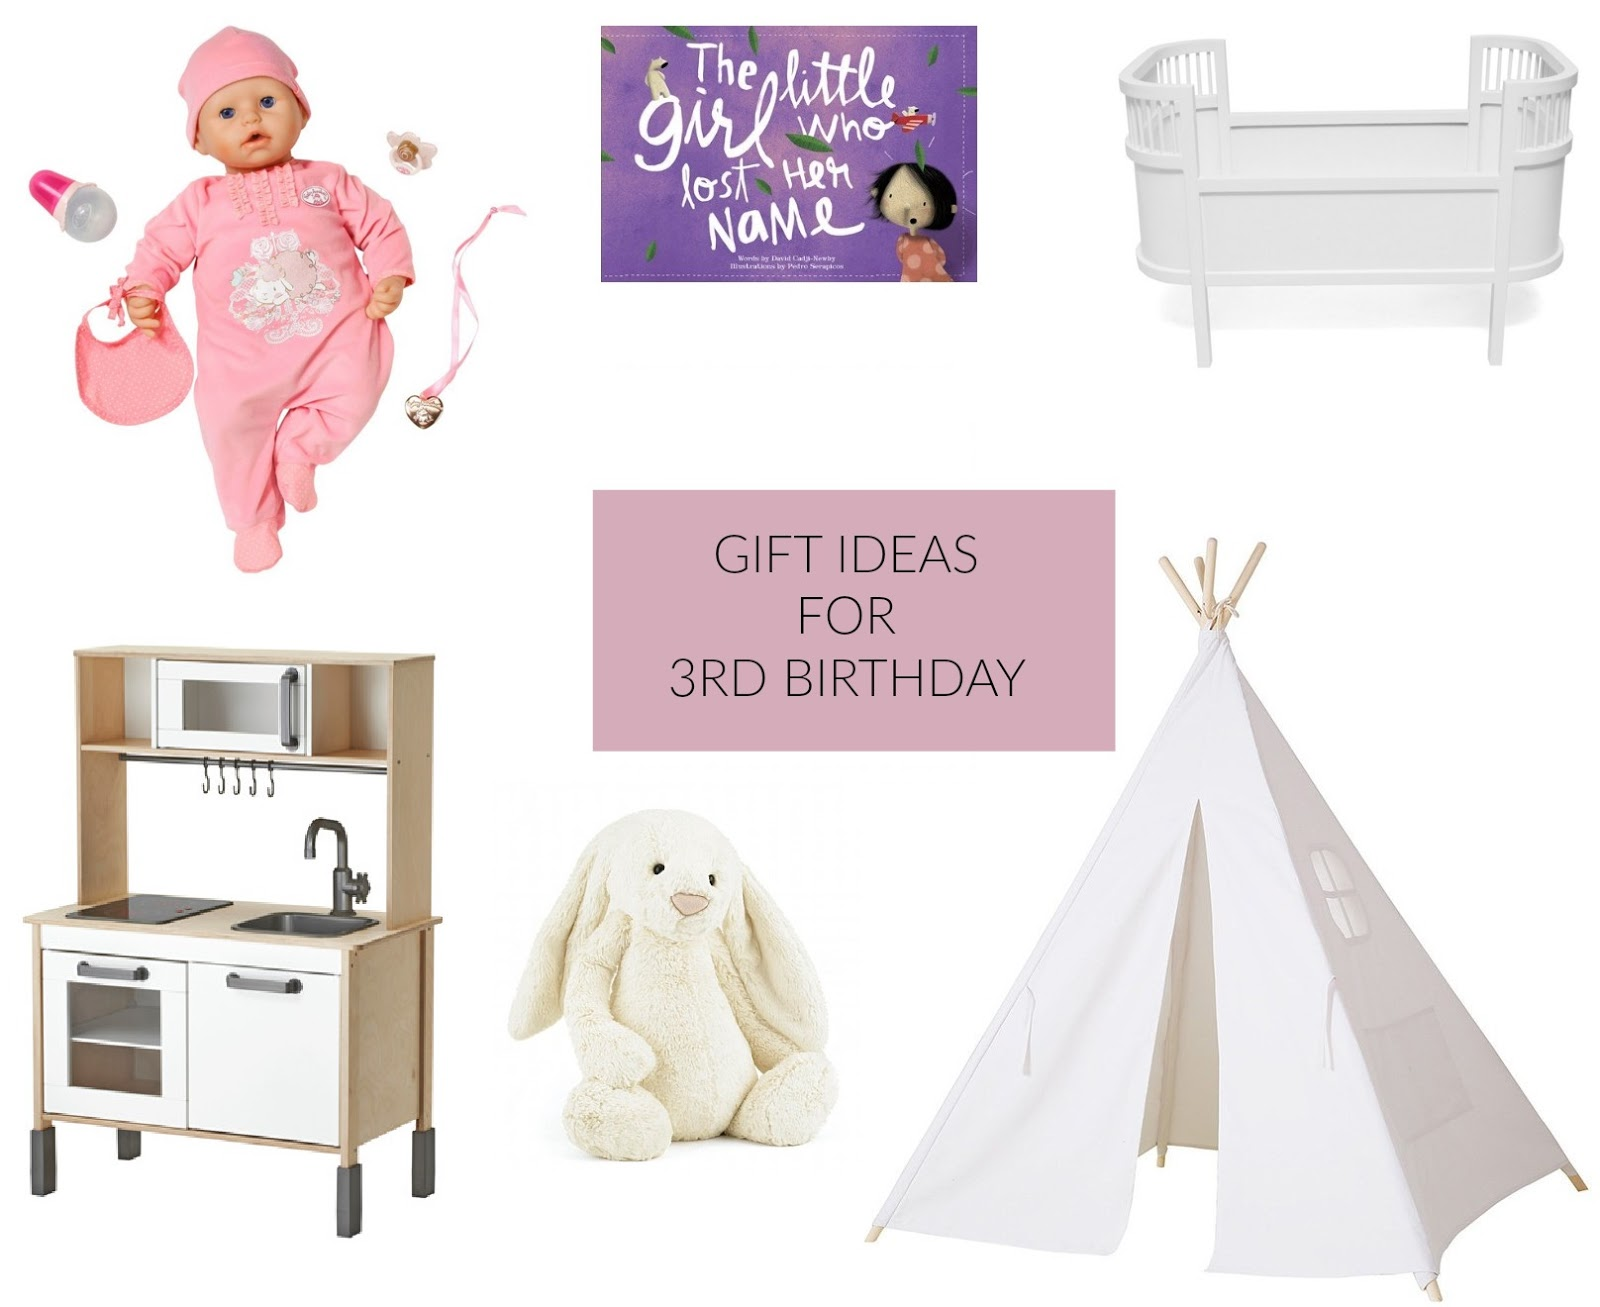 Gift Ideas For 3rd Birthday